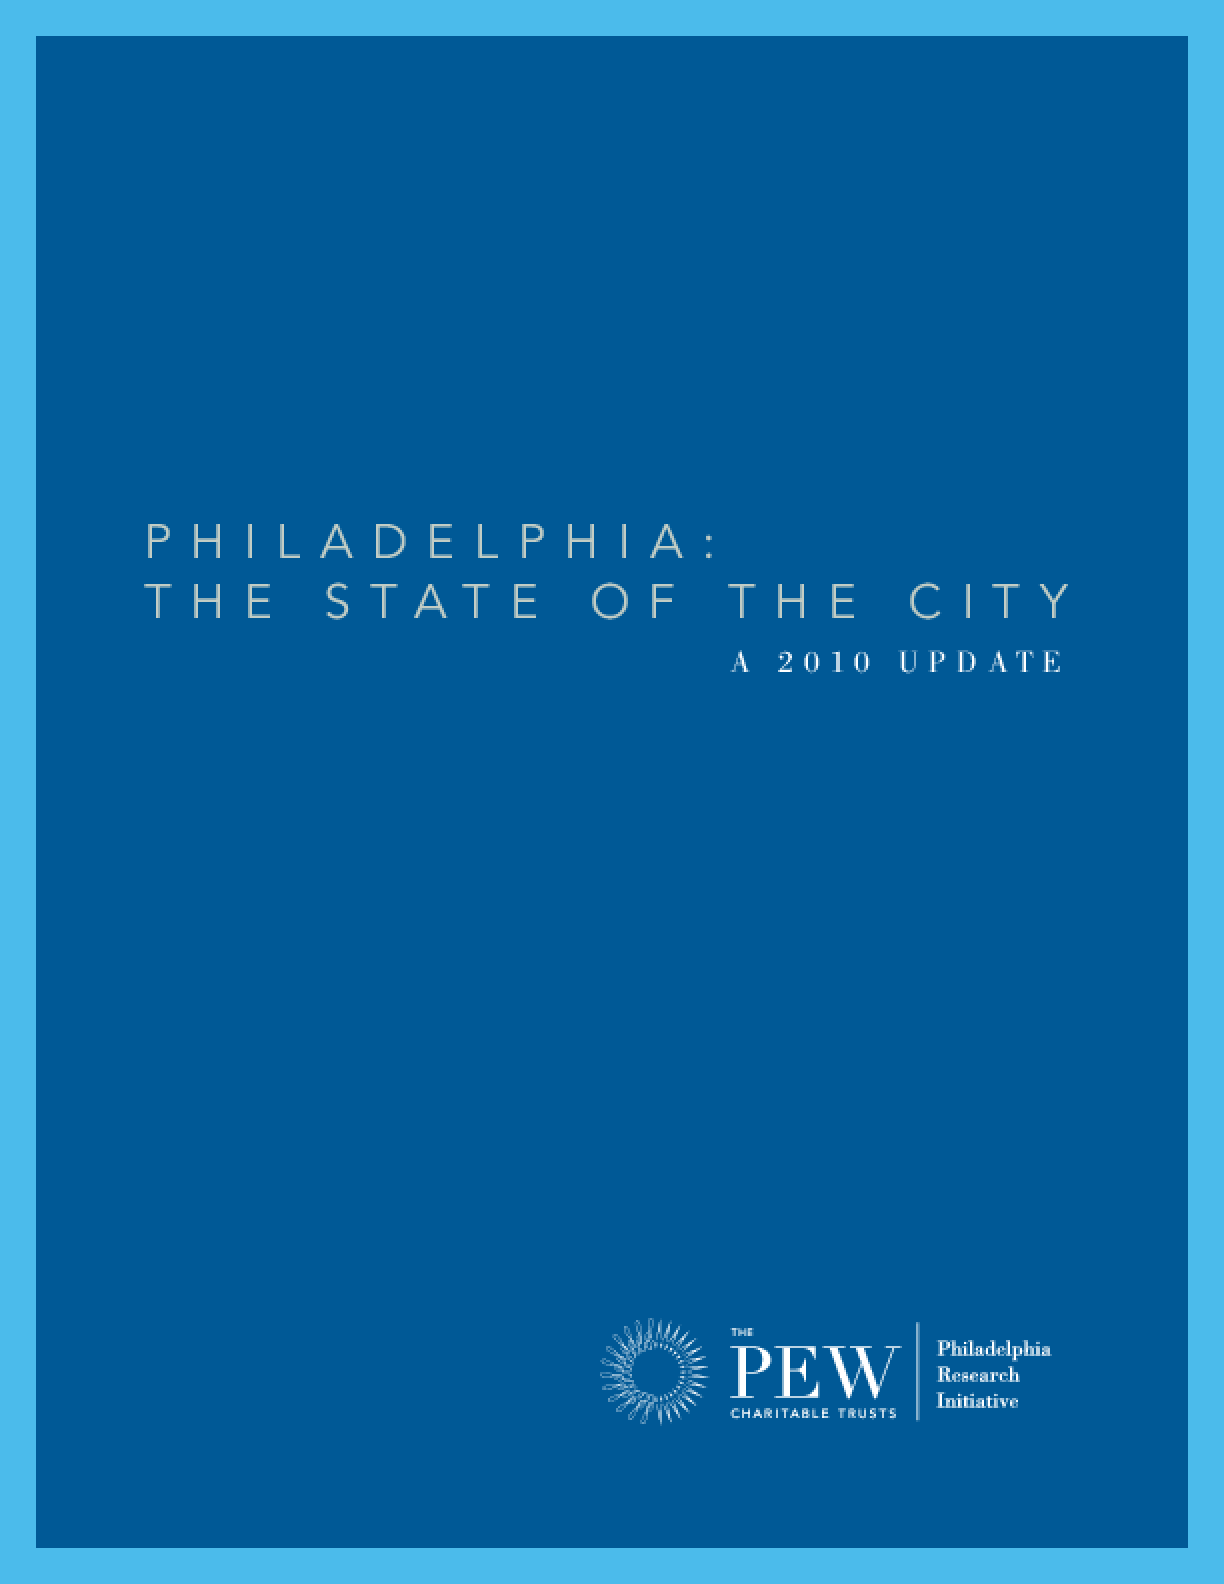 Philadelphia: The State of the City -- A 2010 Update